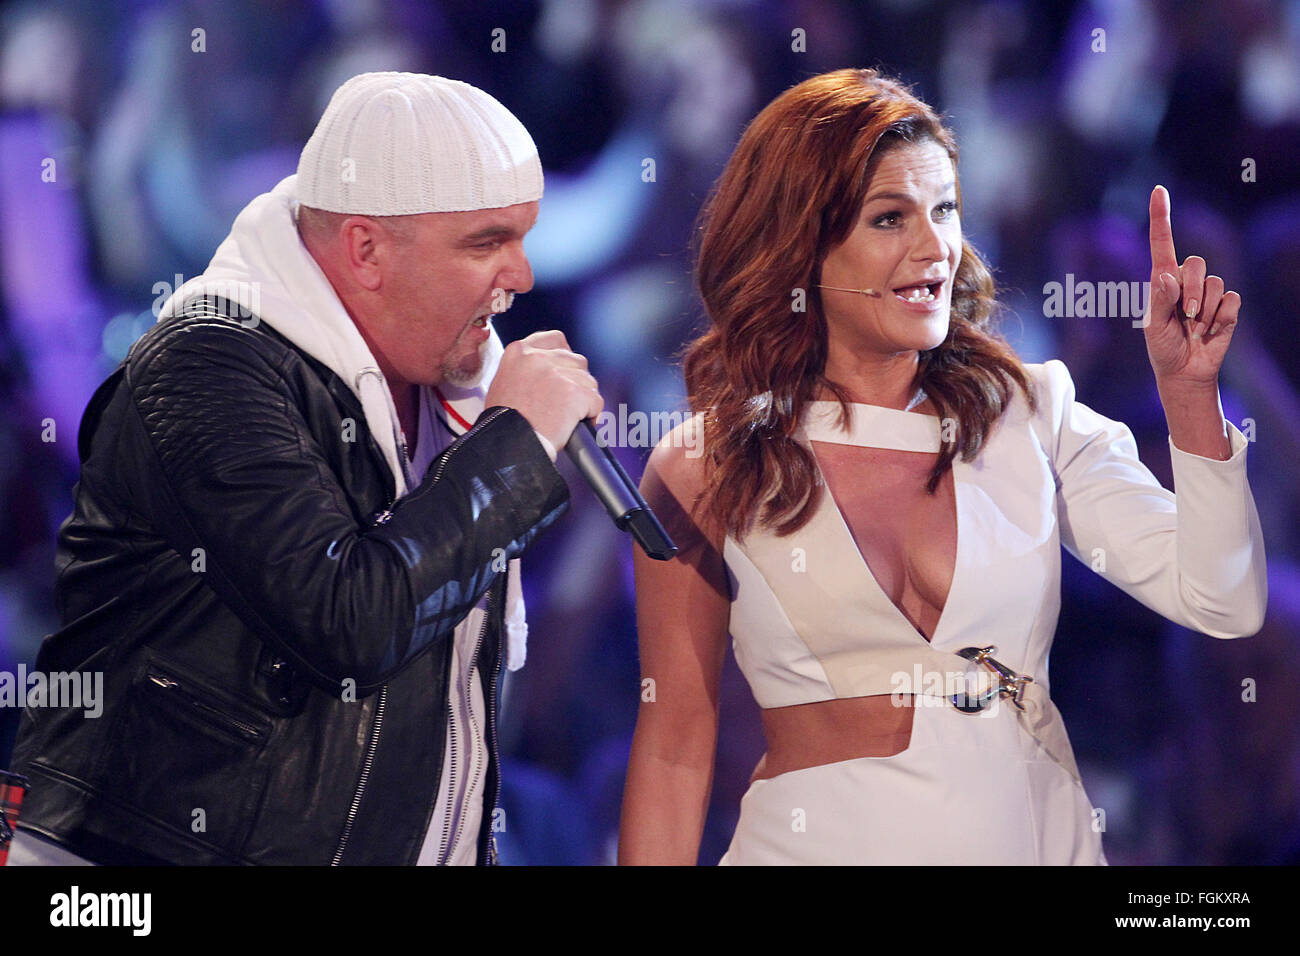 Andrea berg 2016 hd image free - 20th Feb 2016 Singers Andrea Berg R And Dj Otzi Sing On Stage During The Television Show Das Glueckwunschfest Silbereisen Gratuliert In Riesa